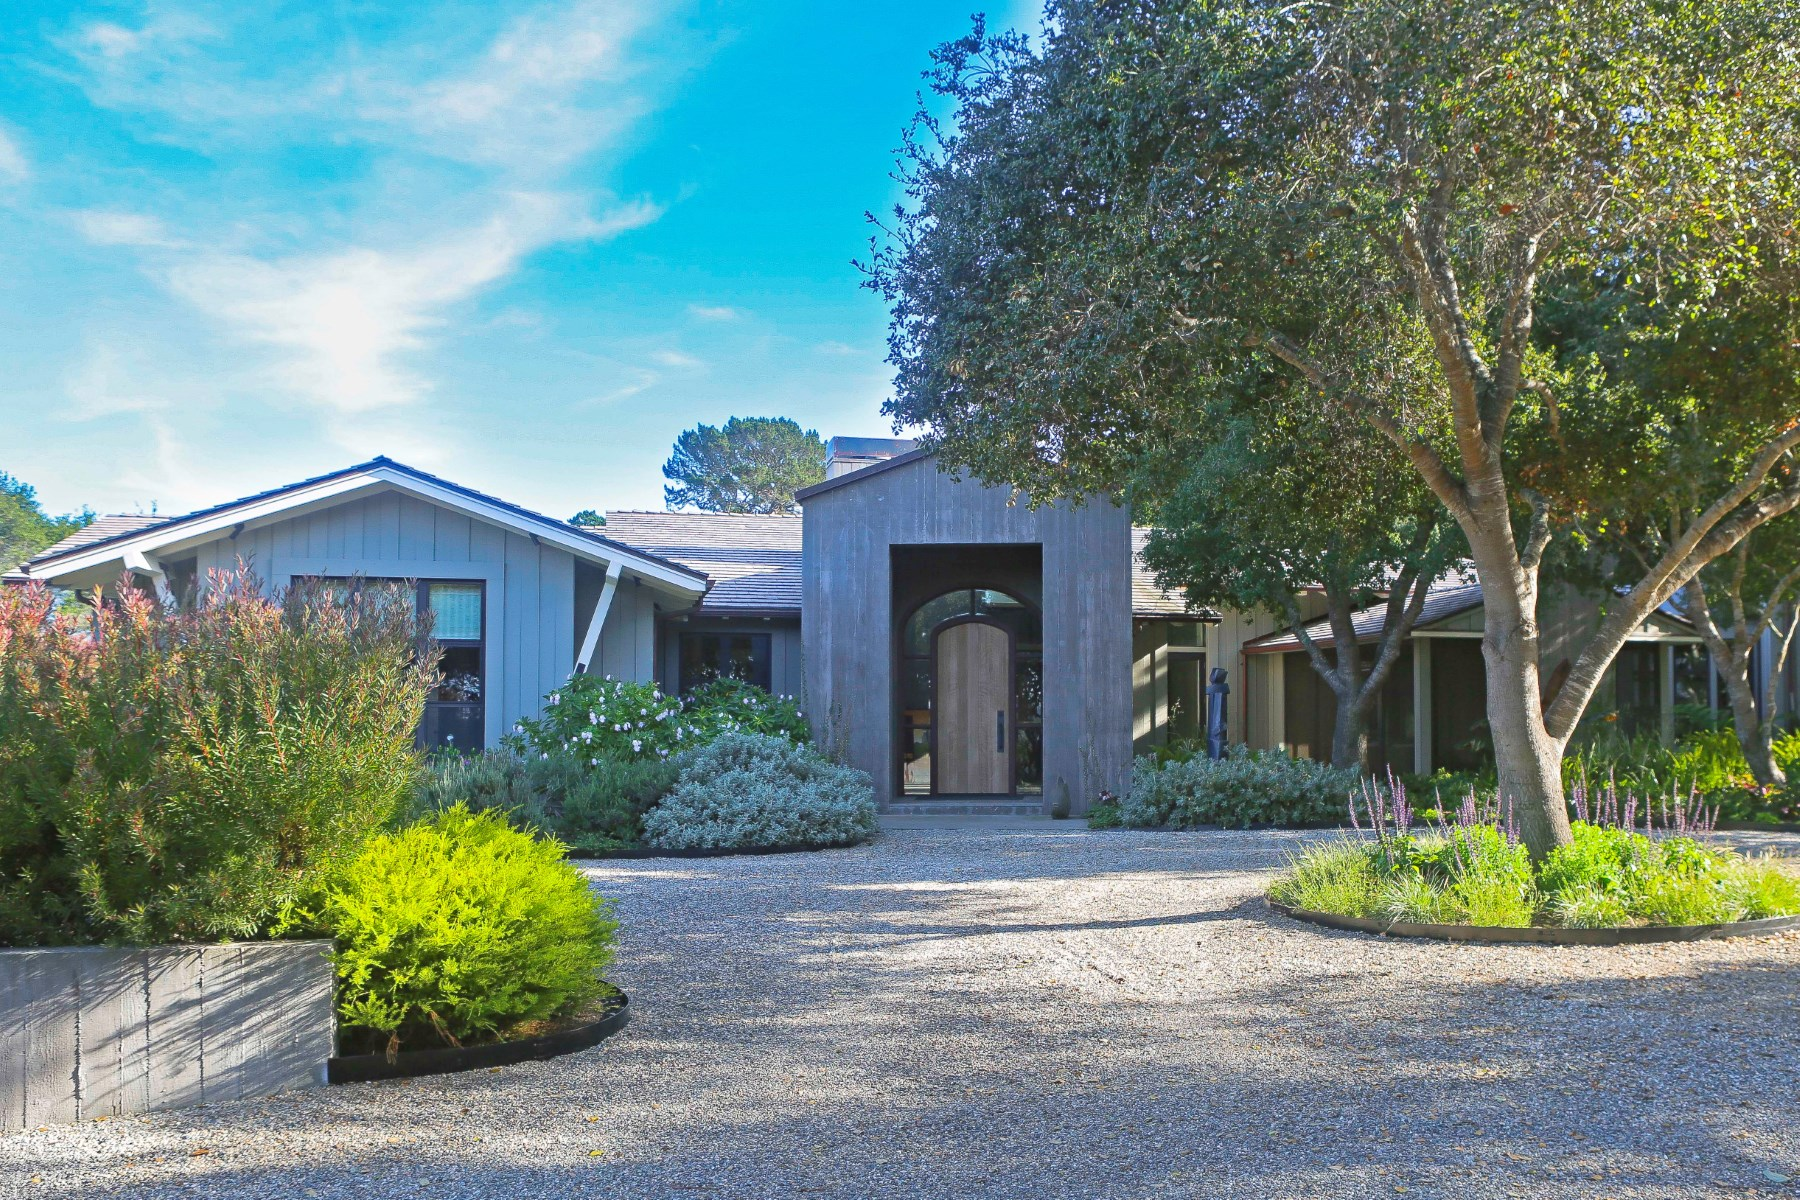 Single Family Home for Sale at Quail Meadows Contemporary 5493 Oak Trail Carmel, California 93923 United States